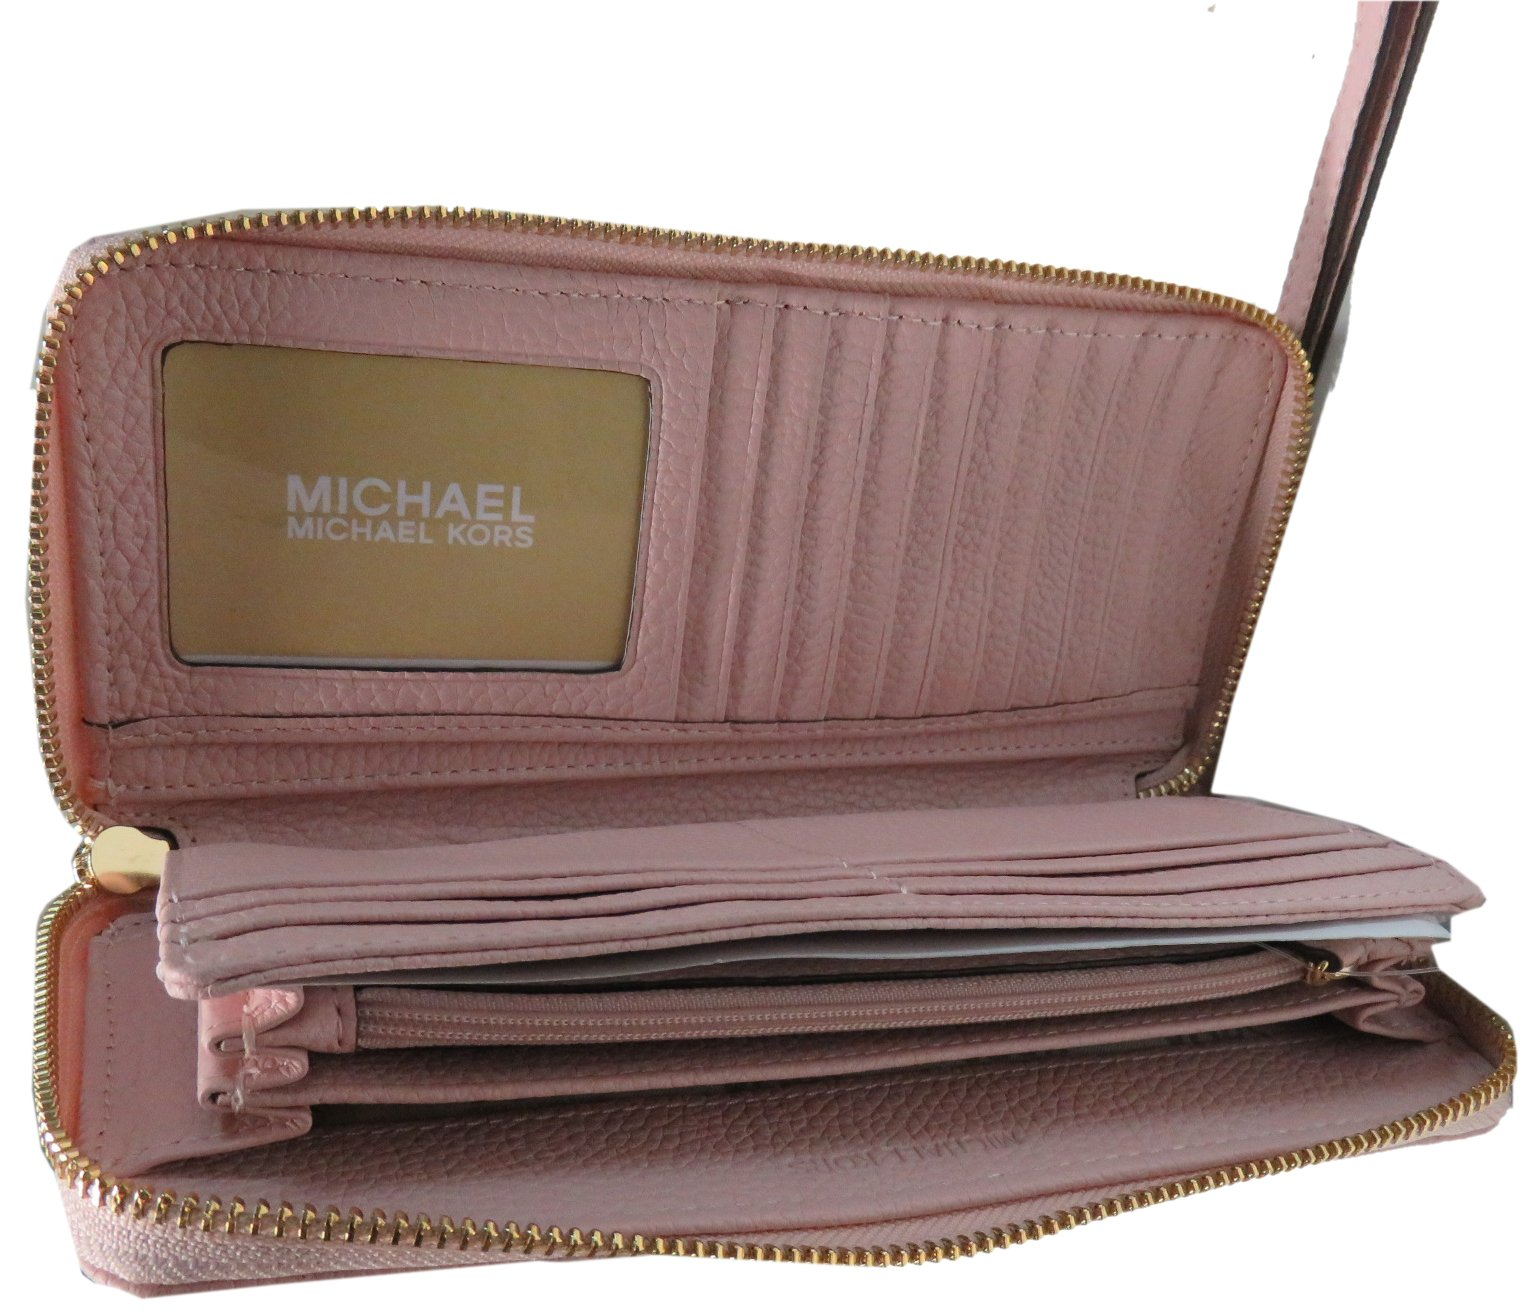 Micheal Kors Jet Set Continental Leather Travel Wallet Wristlet Blossom Pink by Michael Kors (Image #2)